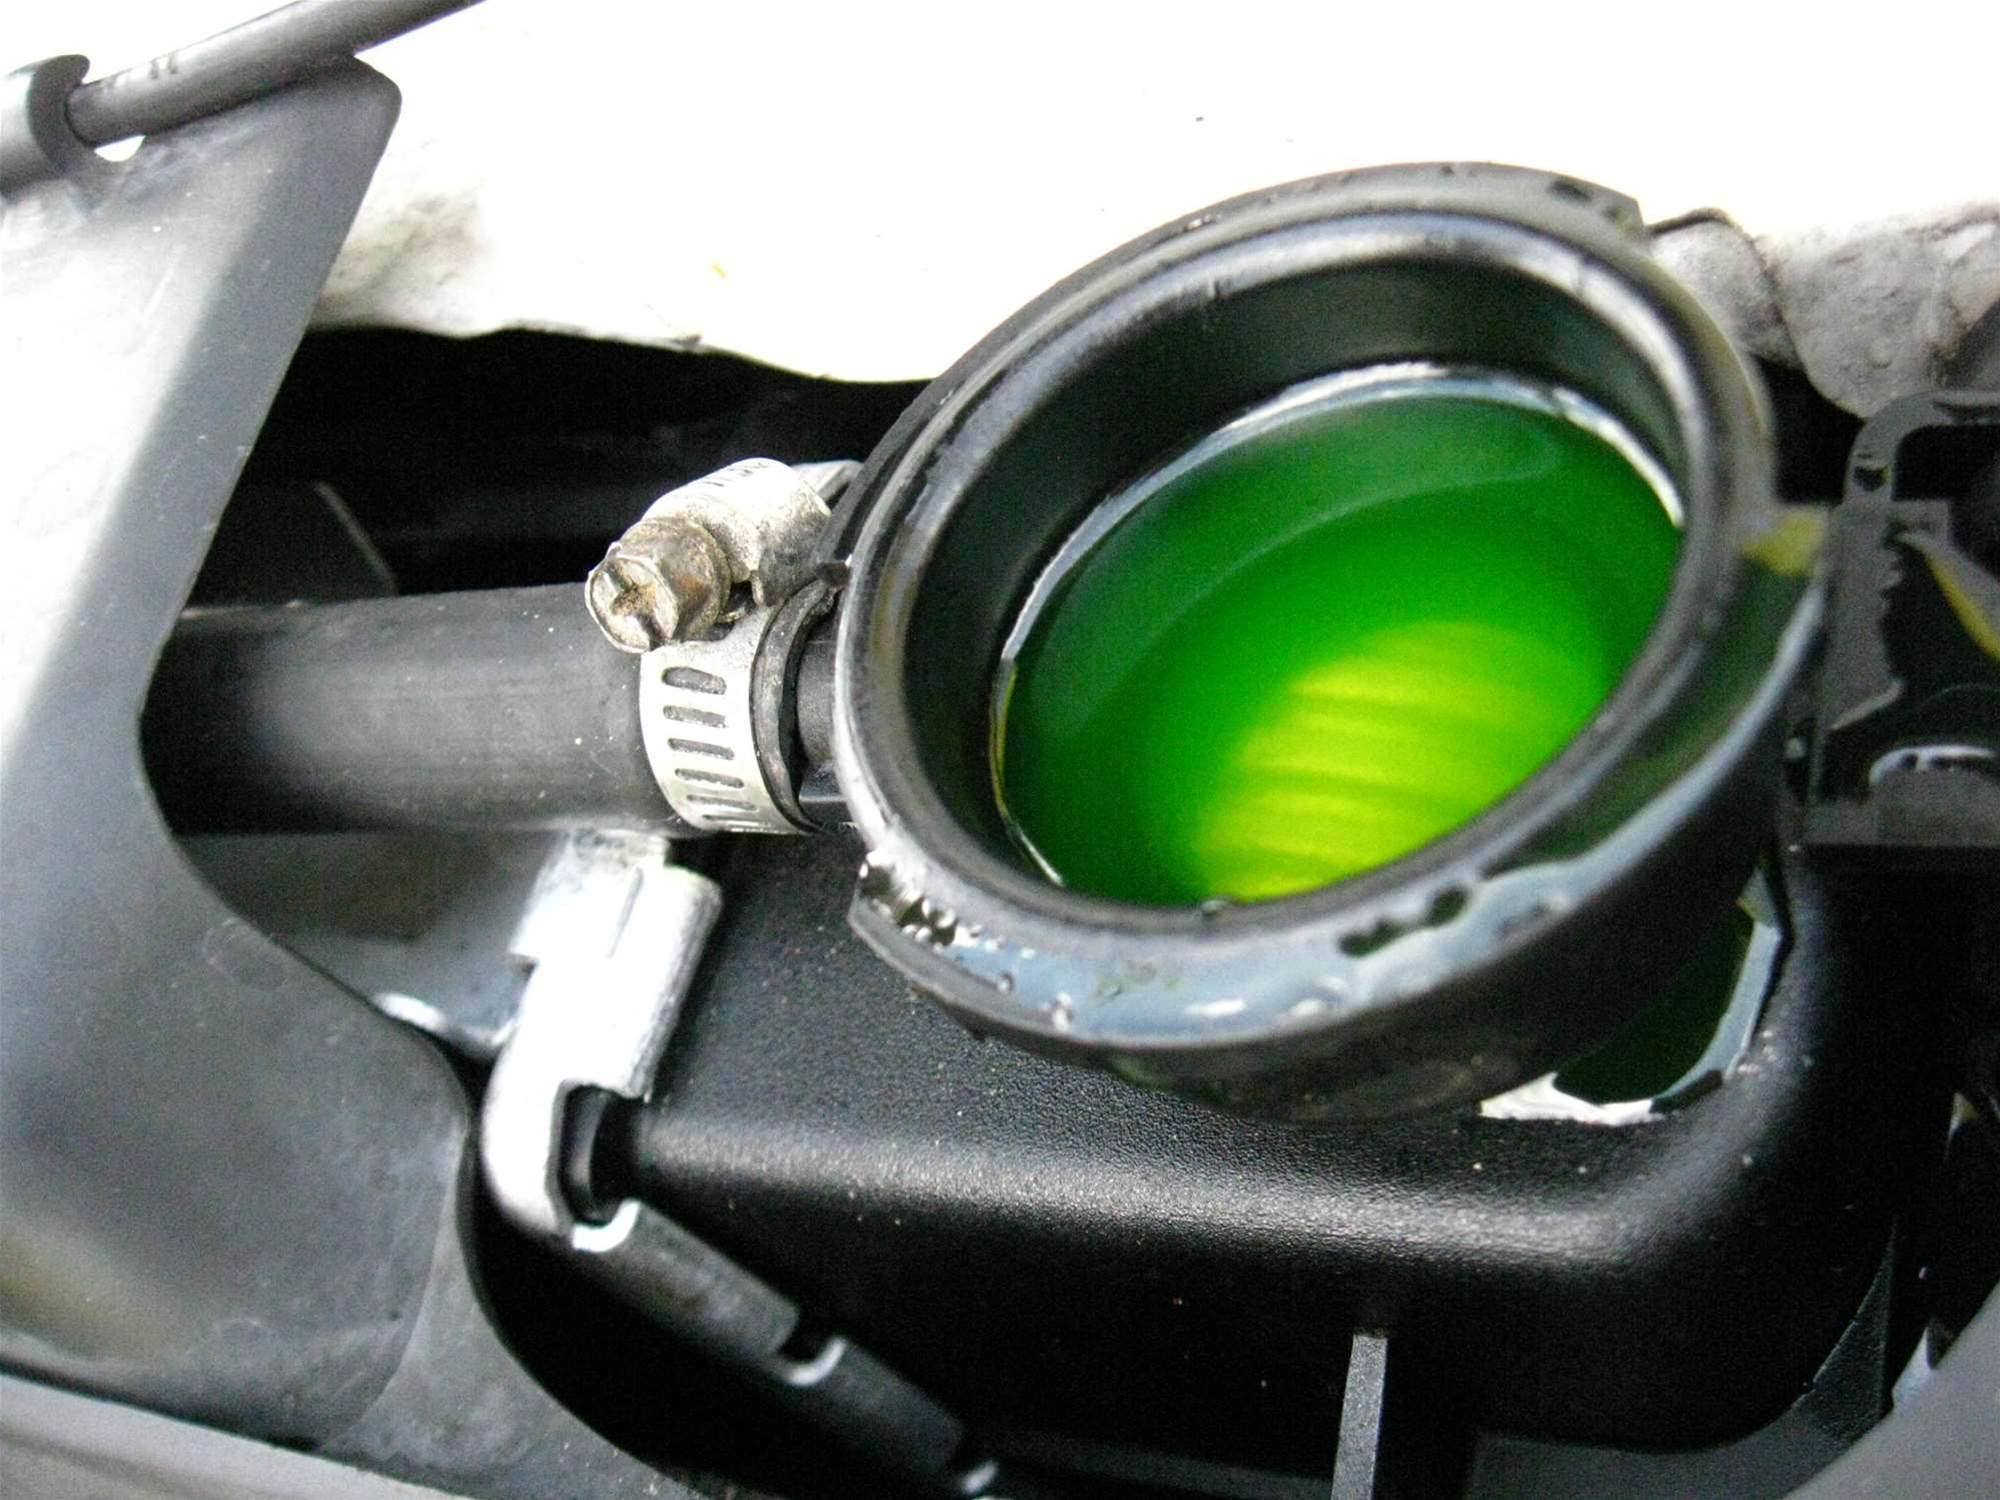 In The Future, Non-Toxic Antifreeze Could Keep Your Car Cool